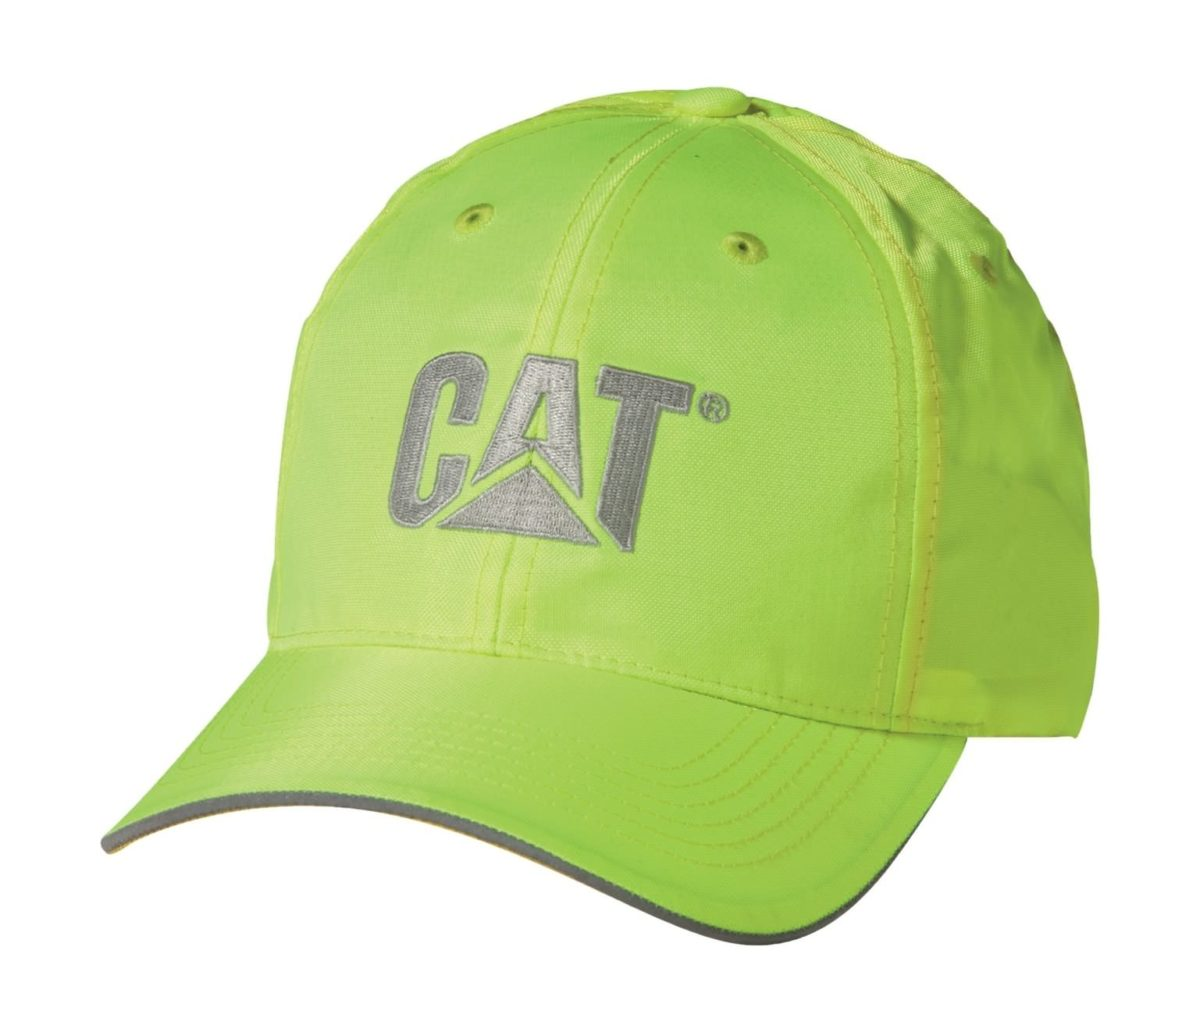 CAT Hi-Vis Trademark Cap